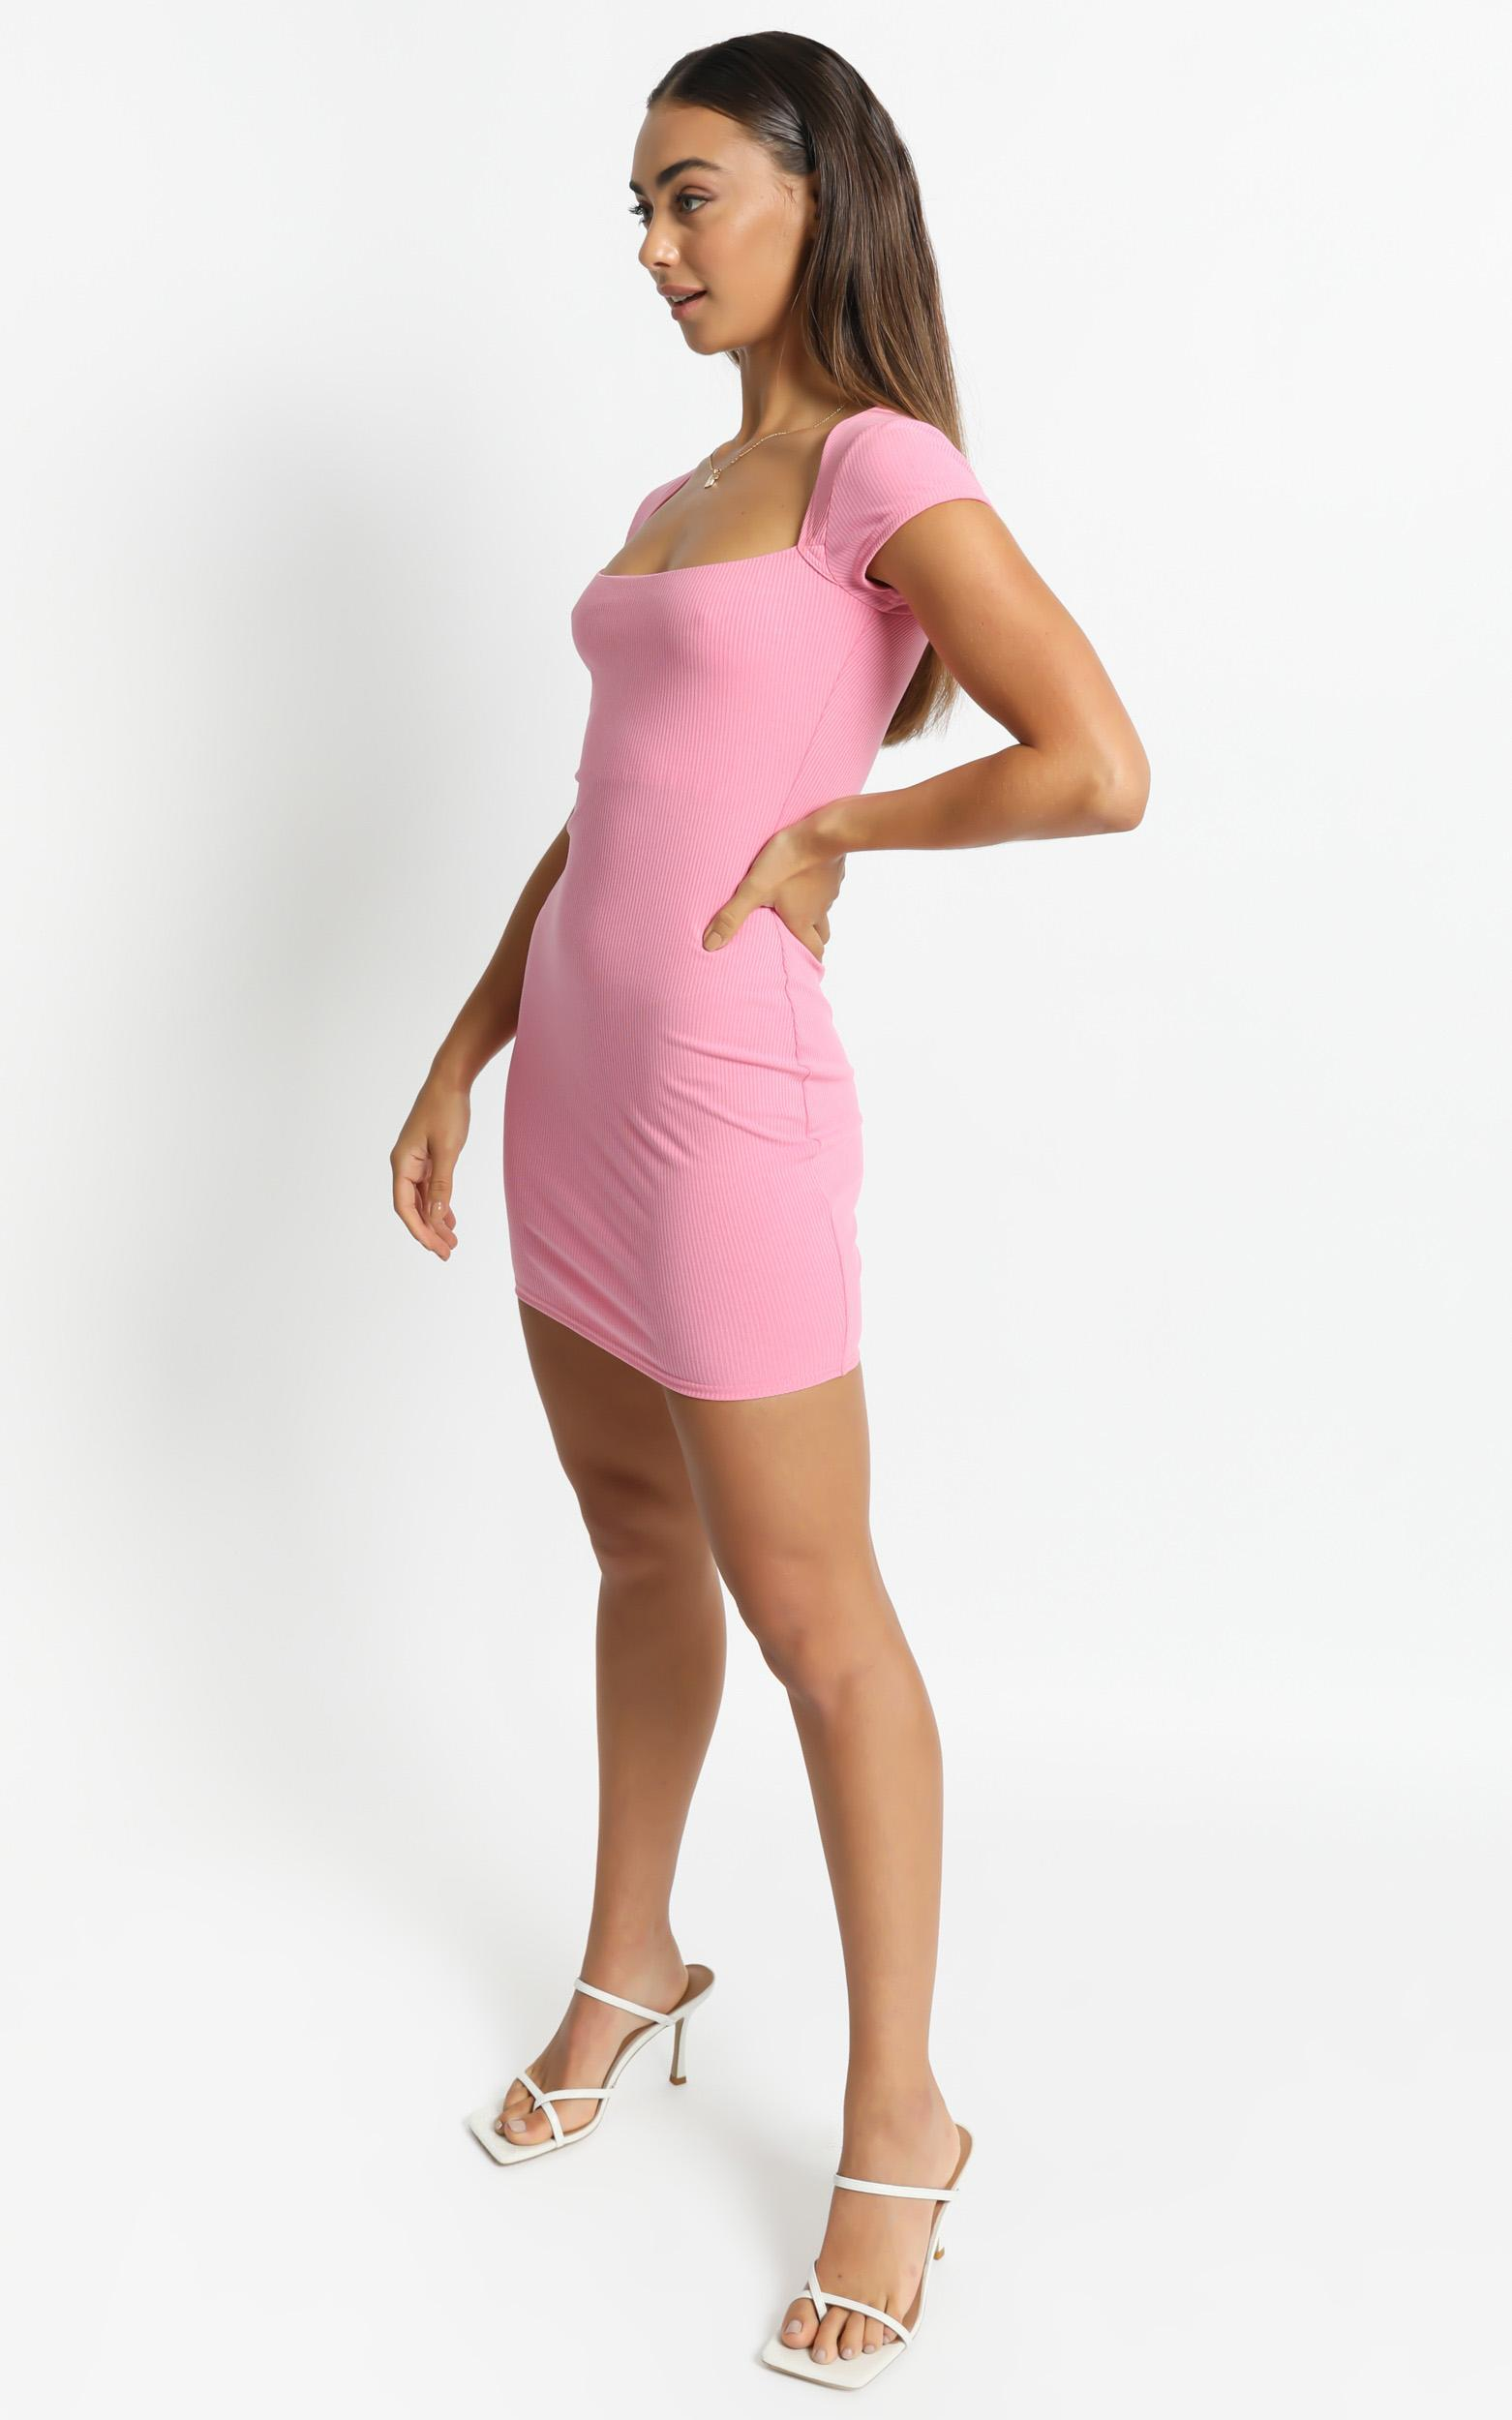 Defying Gravity Dress in Pink - 6 (XS), Pink, hi-res image number null